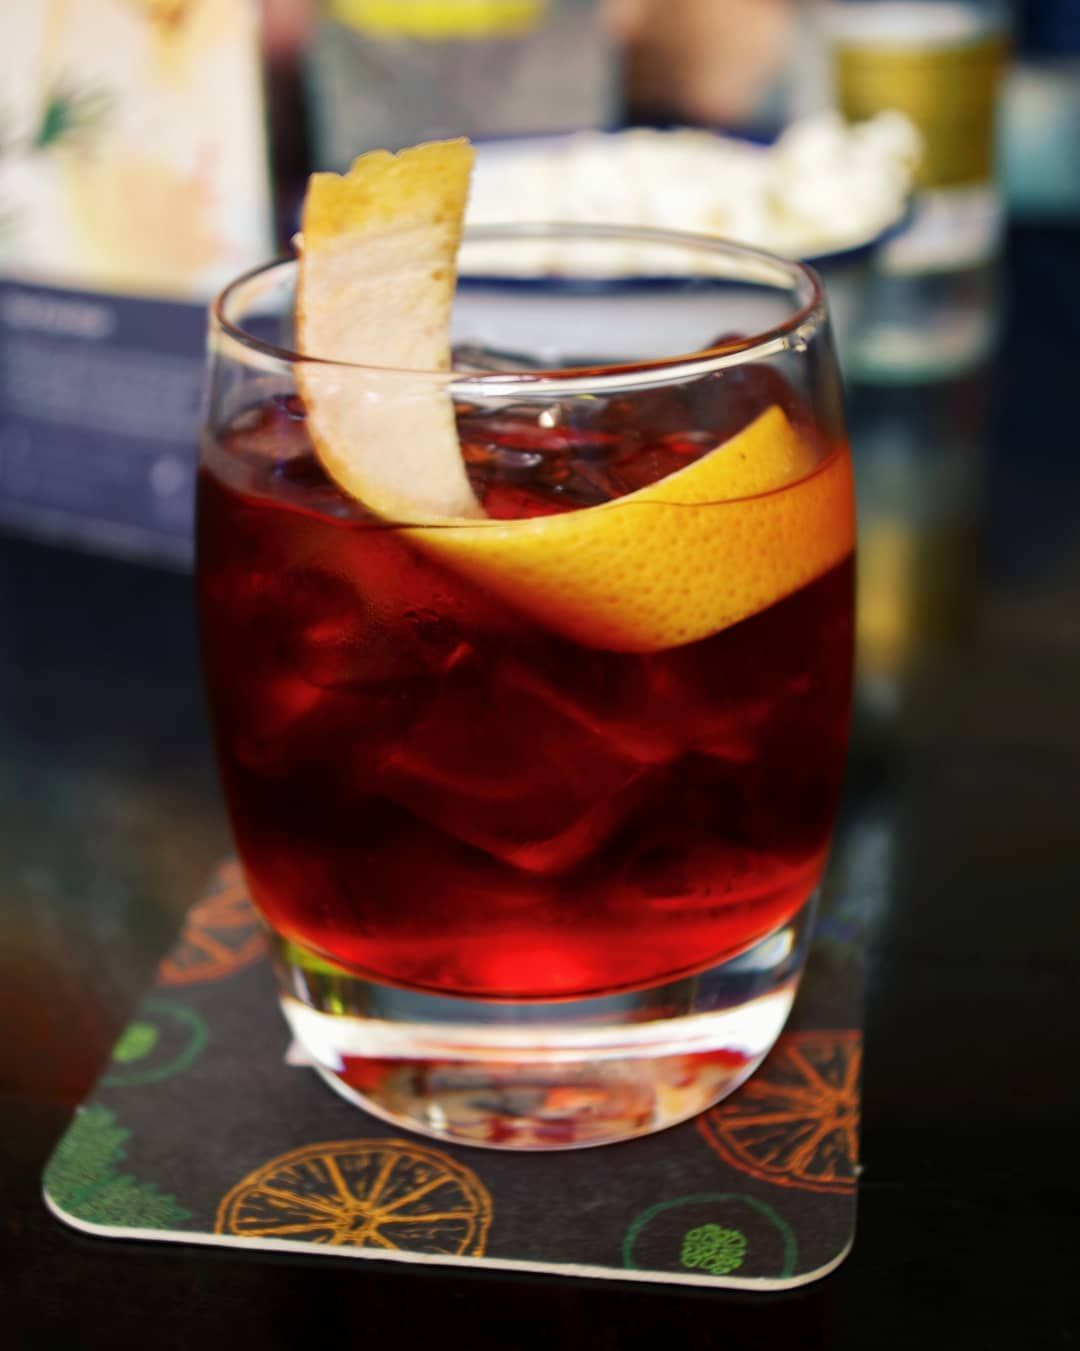 I Ve Posted This One Sometime Ago But Feel Negroniweek Is The Perfect Time To Share This Weird And Wonderful Negroni Variation With You Ode To Glasgow I 2020